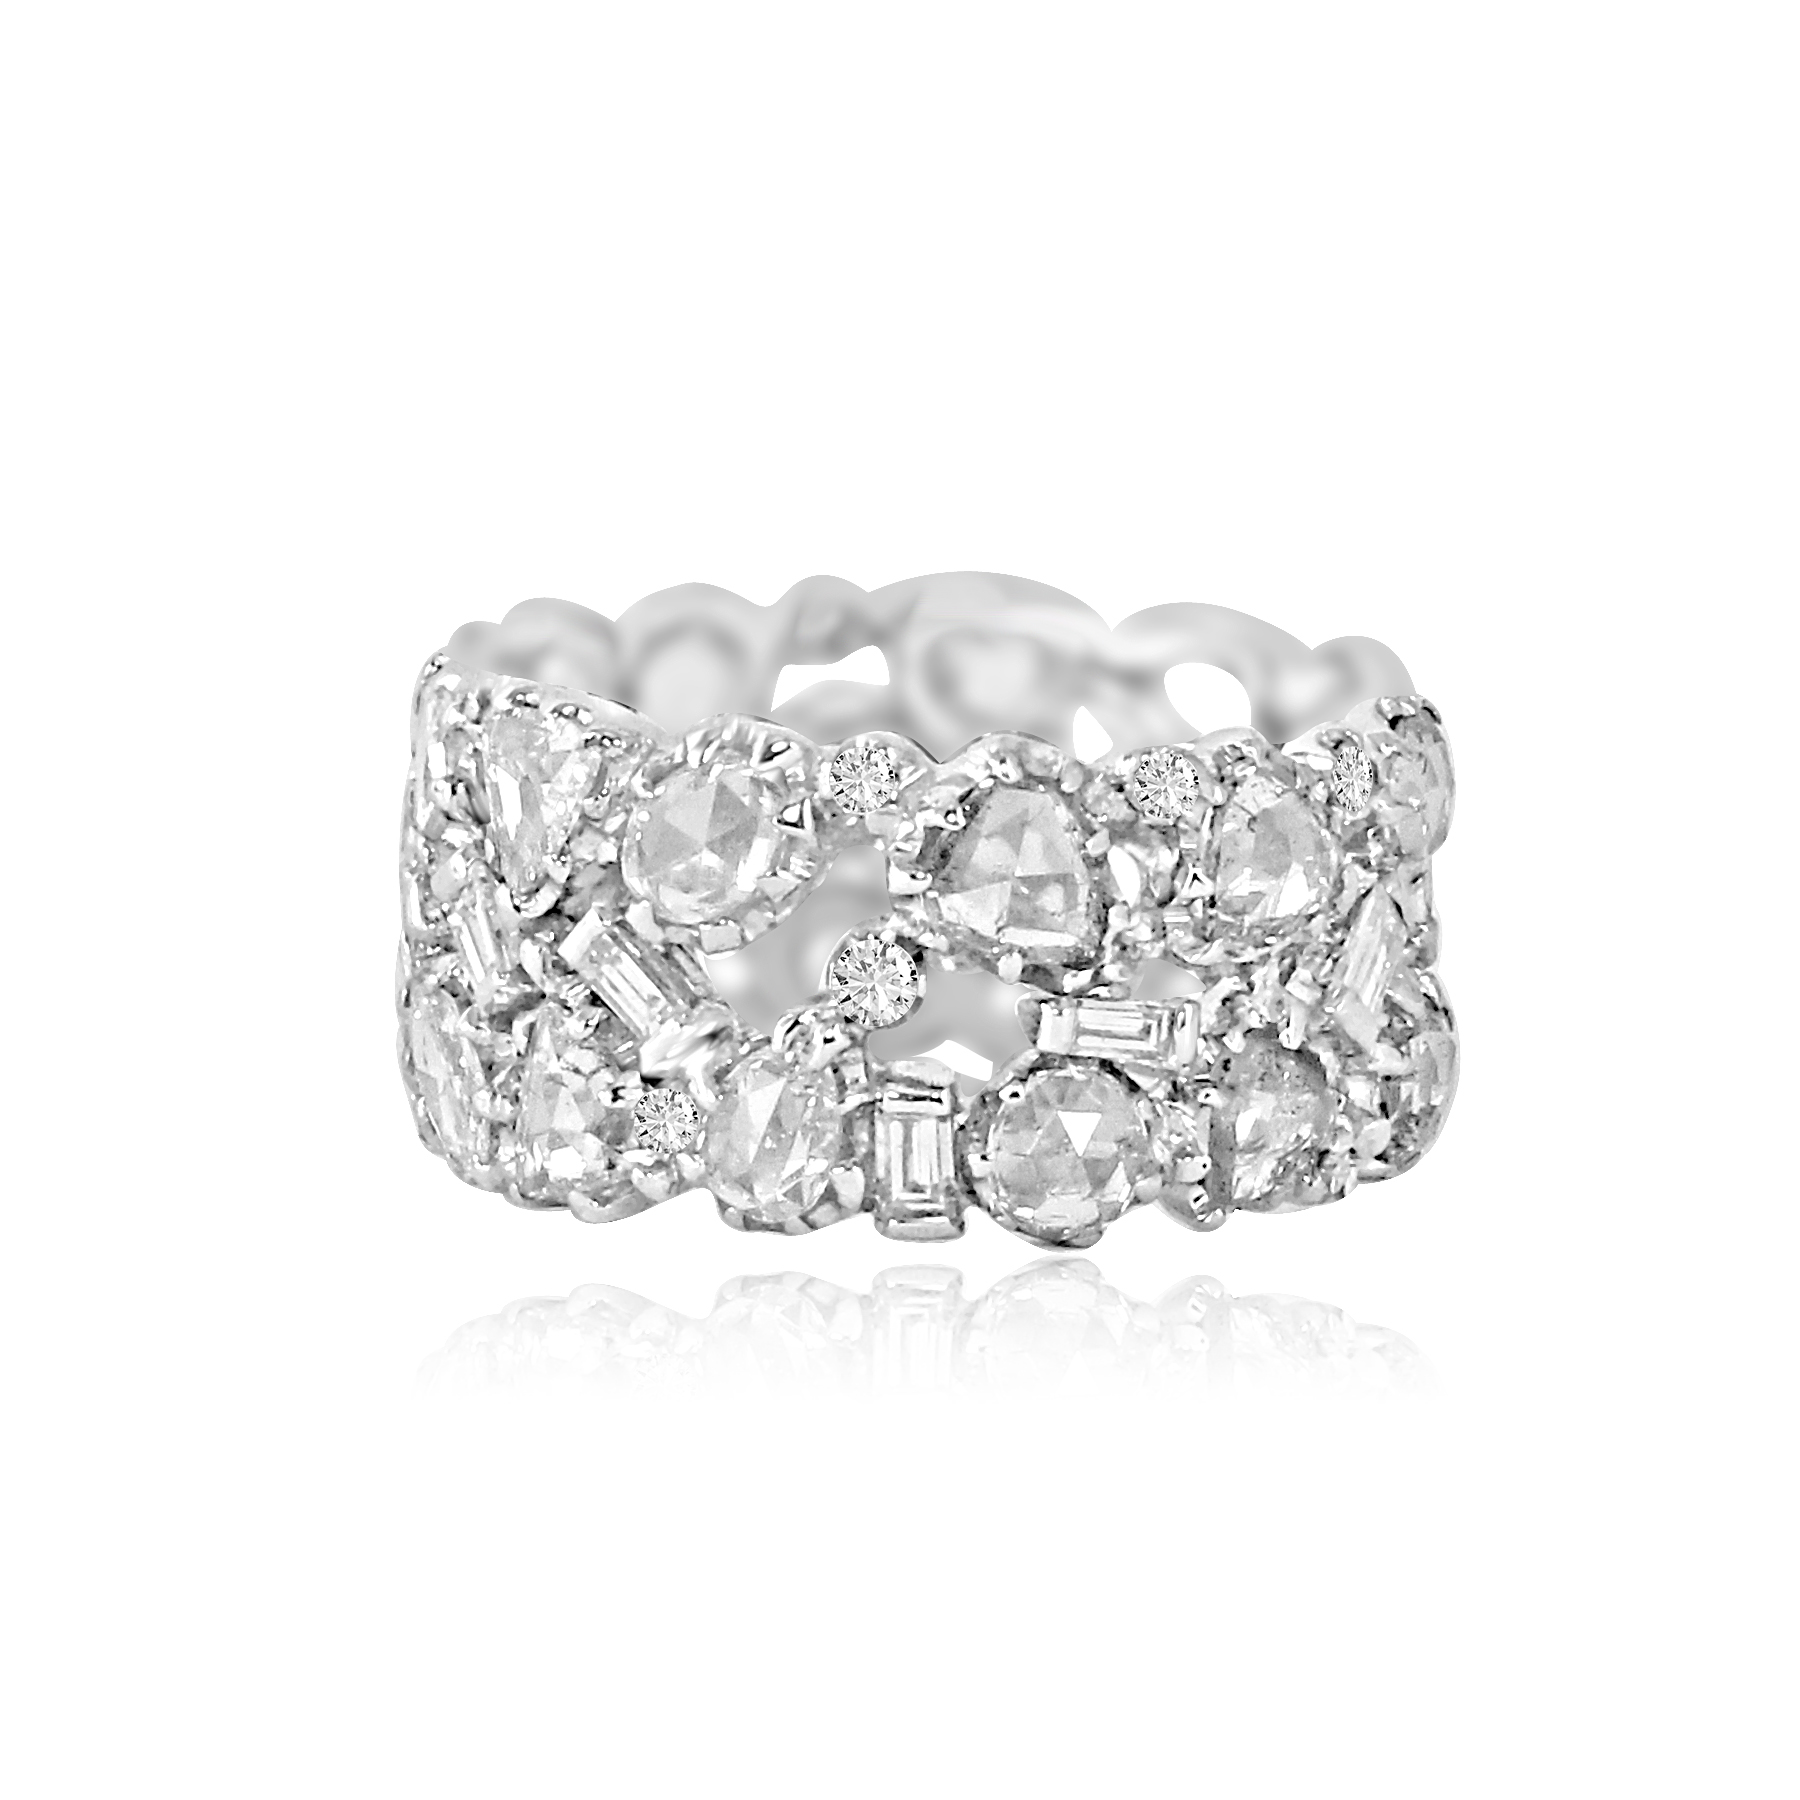 Rose Cut Diamond Ring.jpg